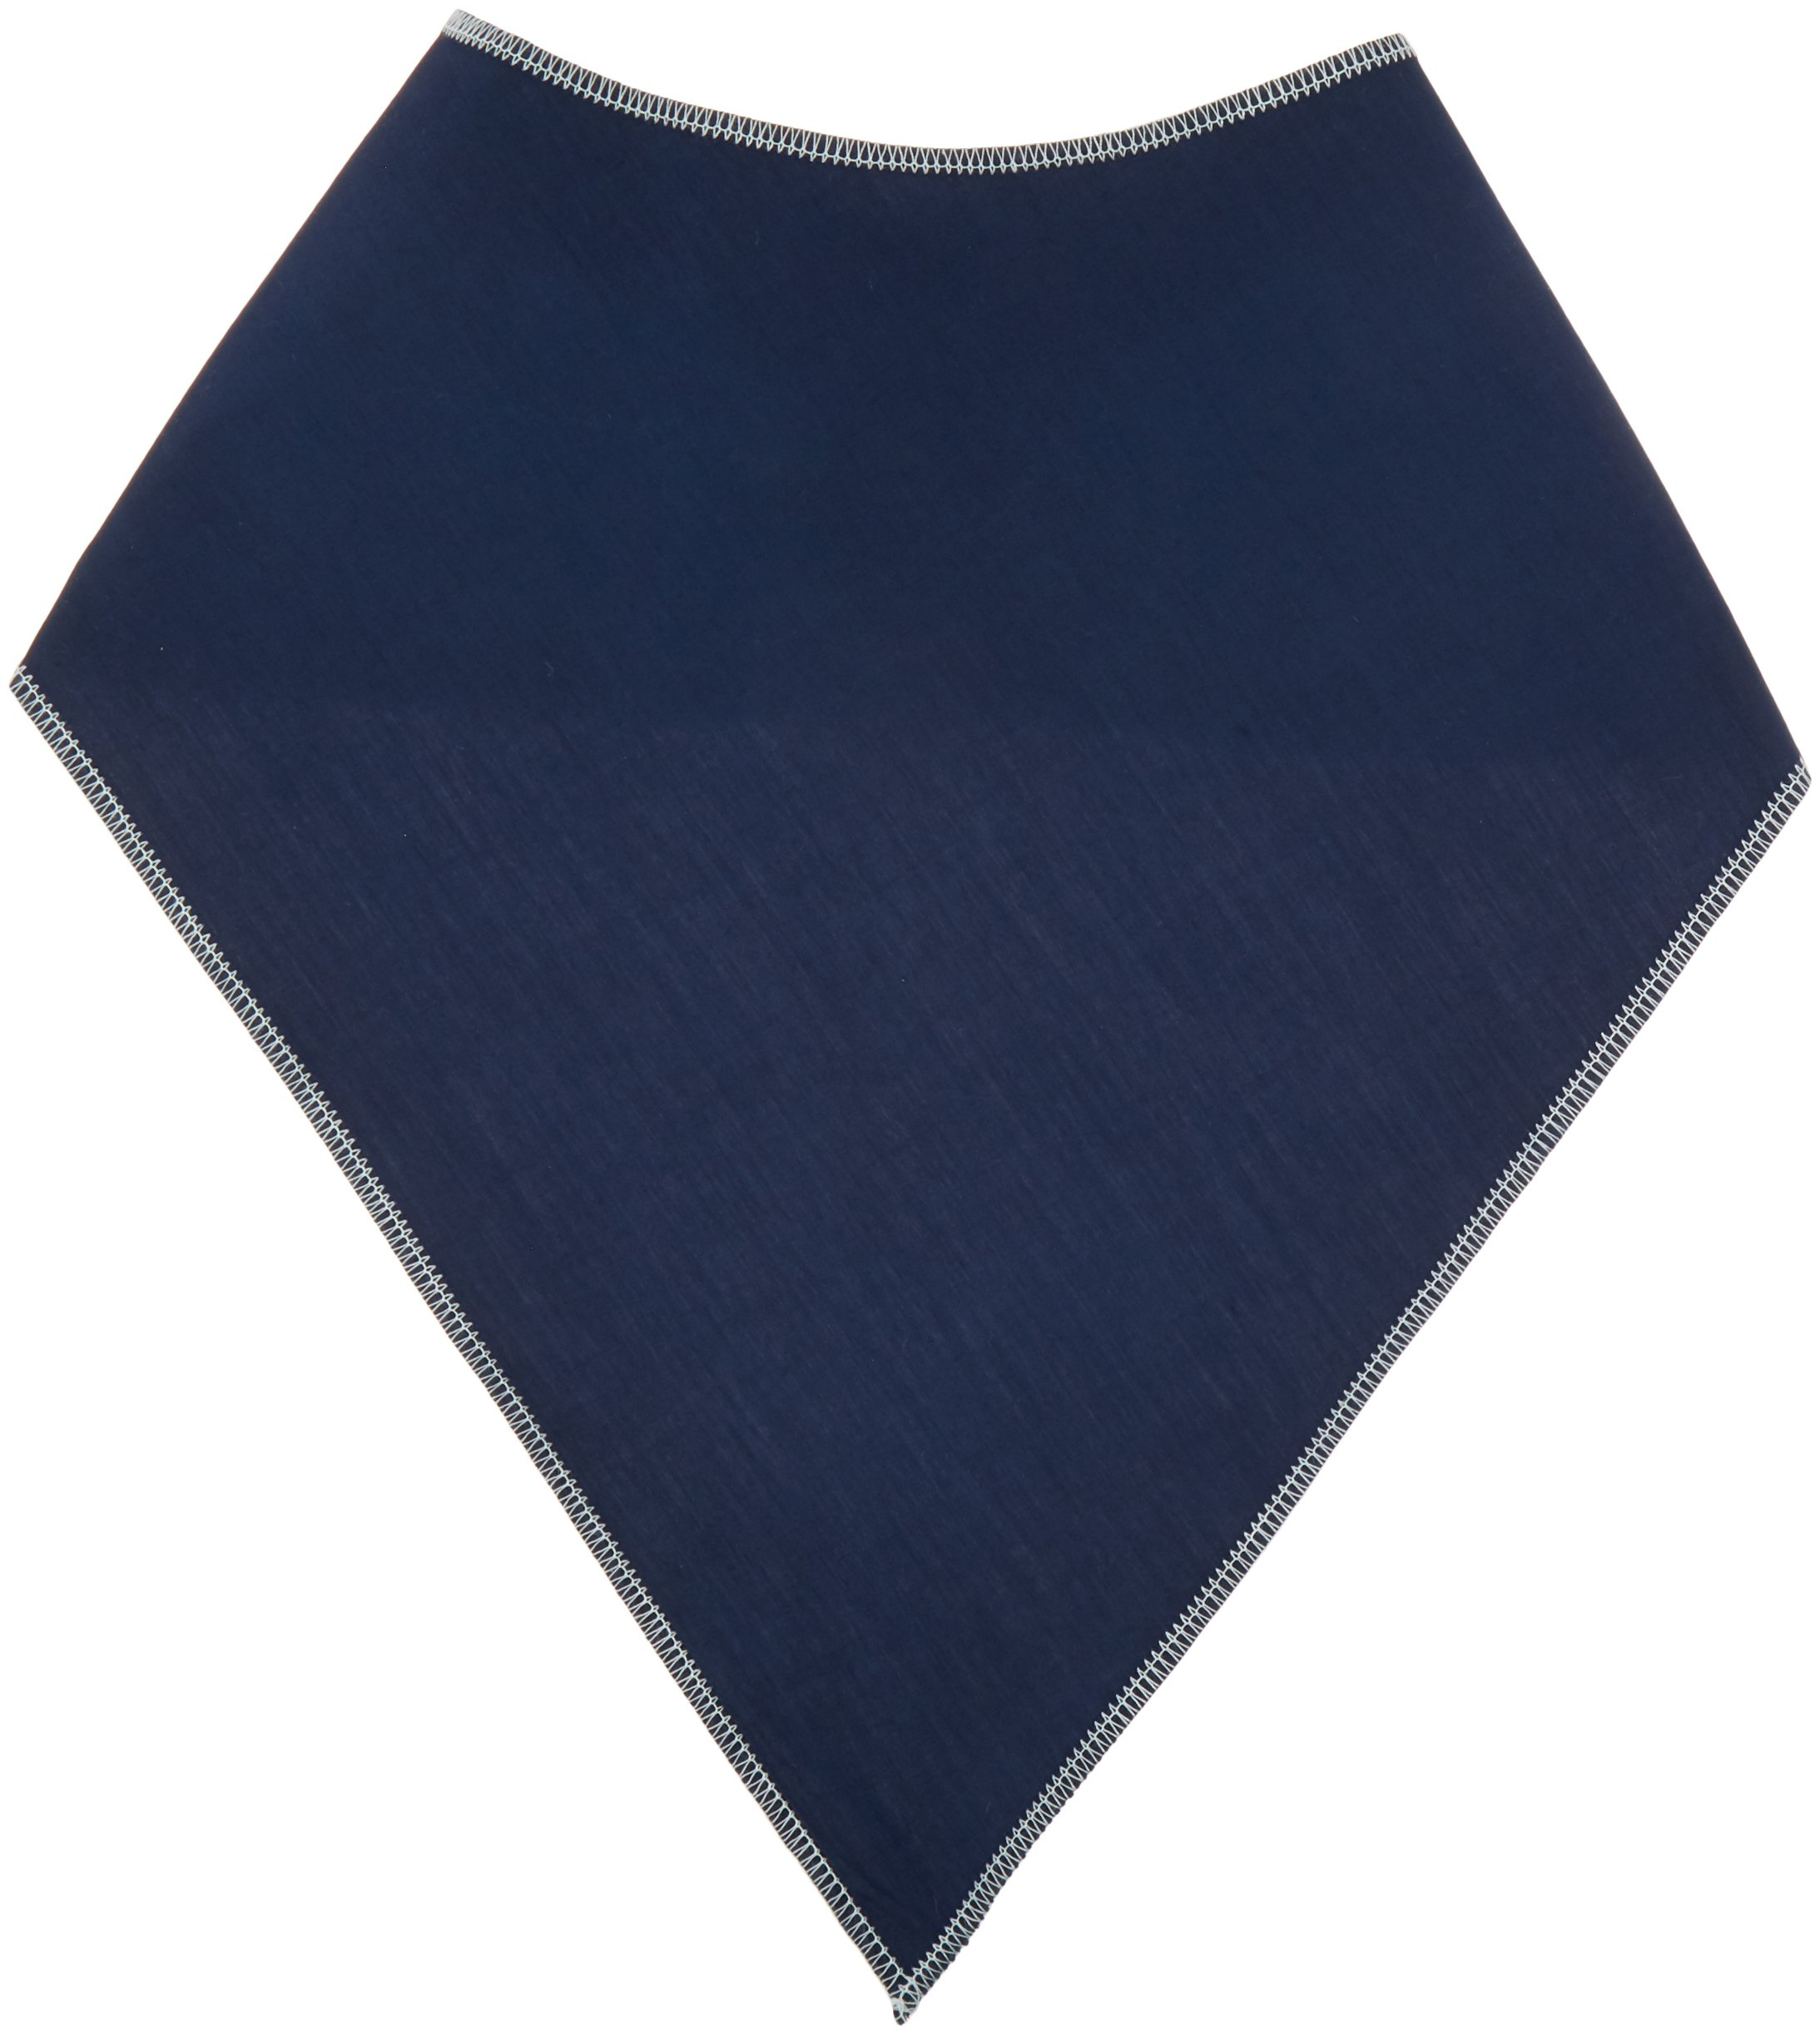 Sammons Preston Bandanna Clothing Protector, Bandanna Bib, 10'' Mid-neck to Tip & 14-1/2'' Wide, Navy, Made Breathable 100% Cotton, Spill-proof Backing For Accident Safety, Adult Size, Combats Drooling